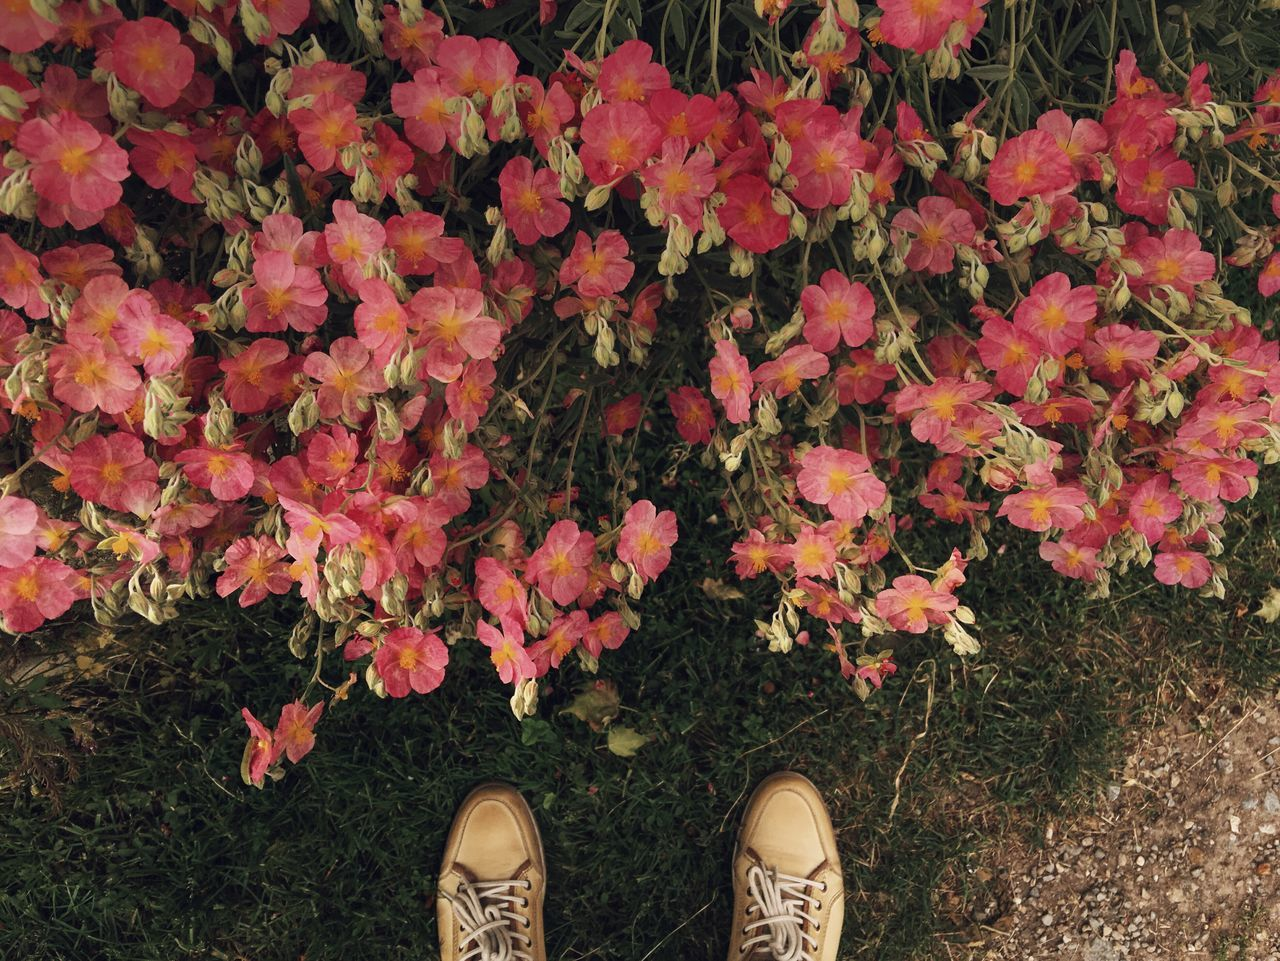 The right place... Found On The Roll Outdoor Photography Flowers Flower Flowerporn Flower Collection Relaxing Outdoors Having Fun Travel Photography Travel Destinations Hiking Enjoying Life Taking Photos Vscocam VSCO Cam Eye4photography  Hello World Traveling Close-up EyeEm Macro_collection Feetselfie Fine Art Photography